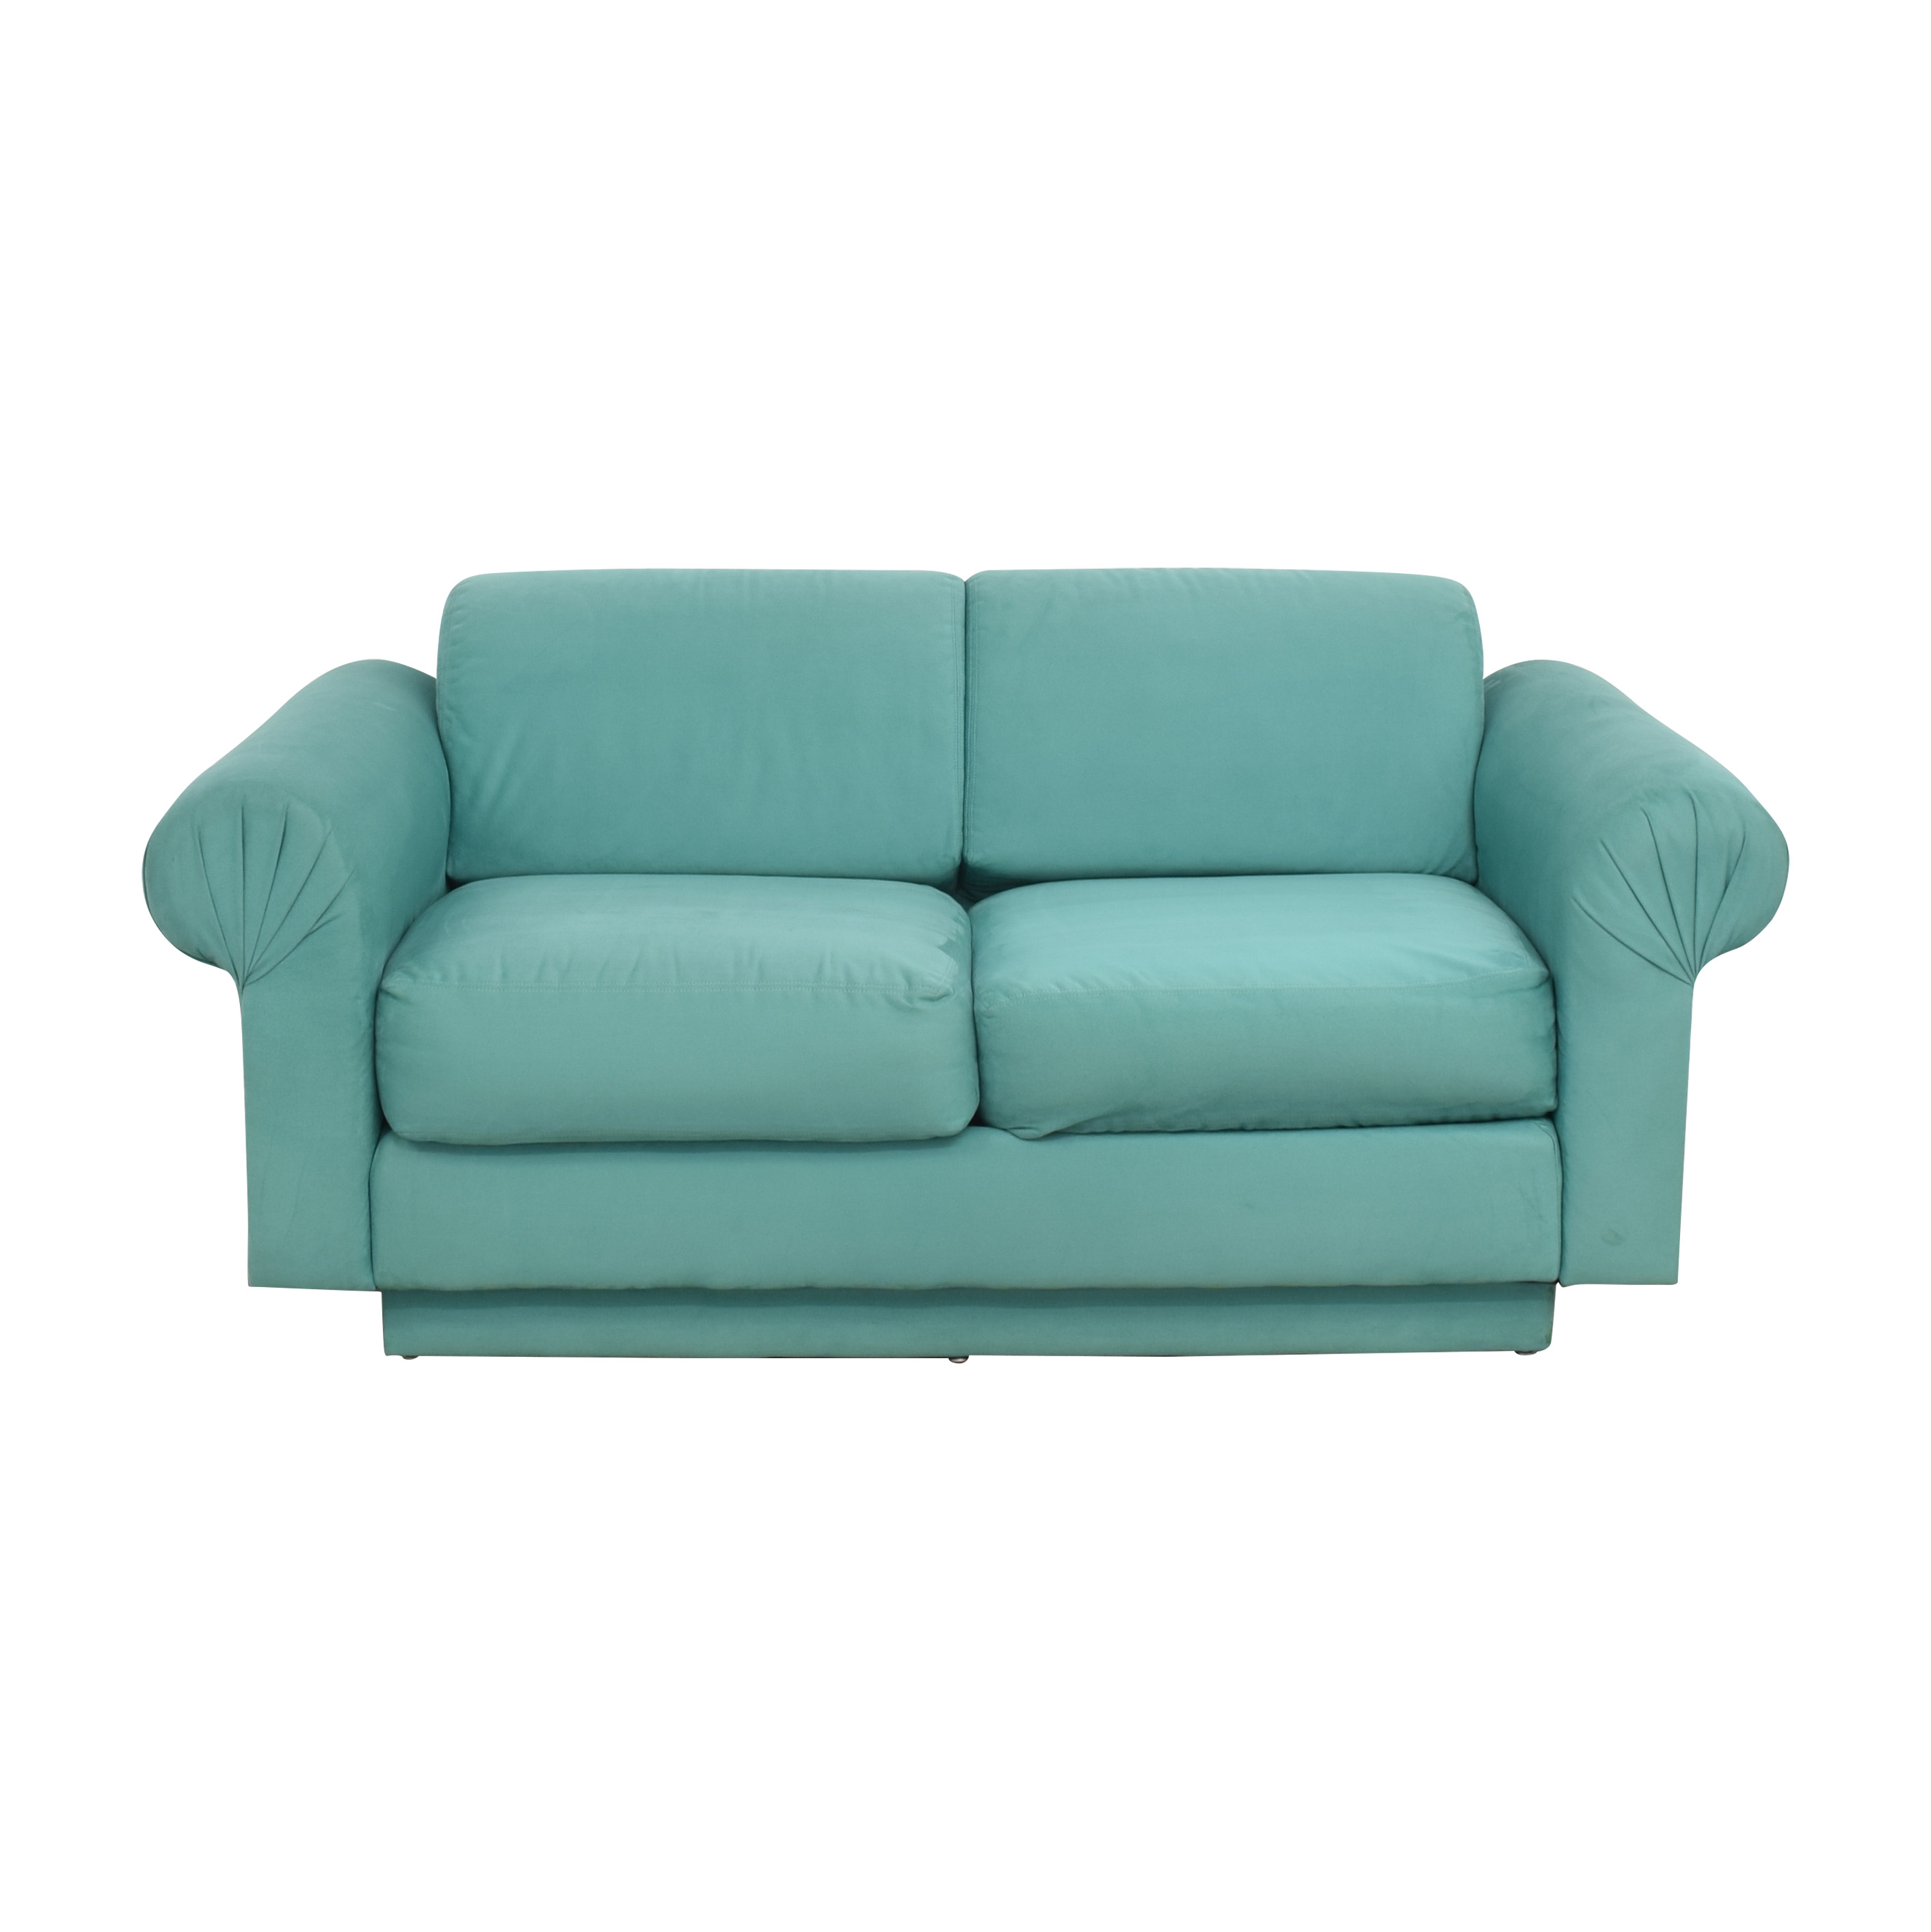 Directional Furniture Directional Furniture Suede Sofa